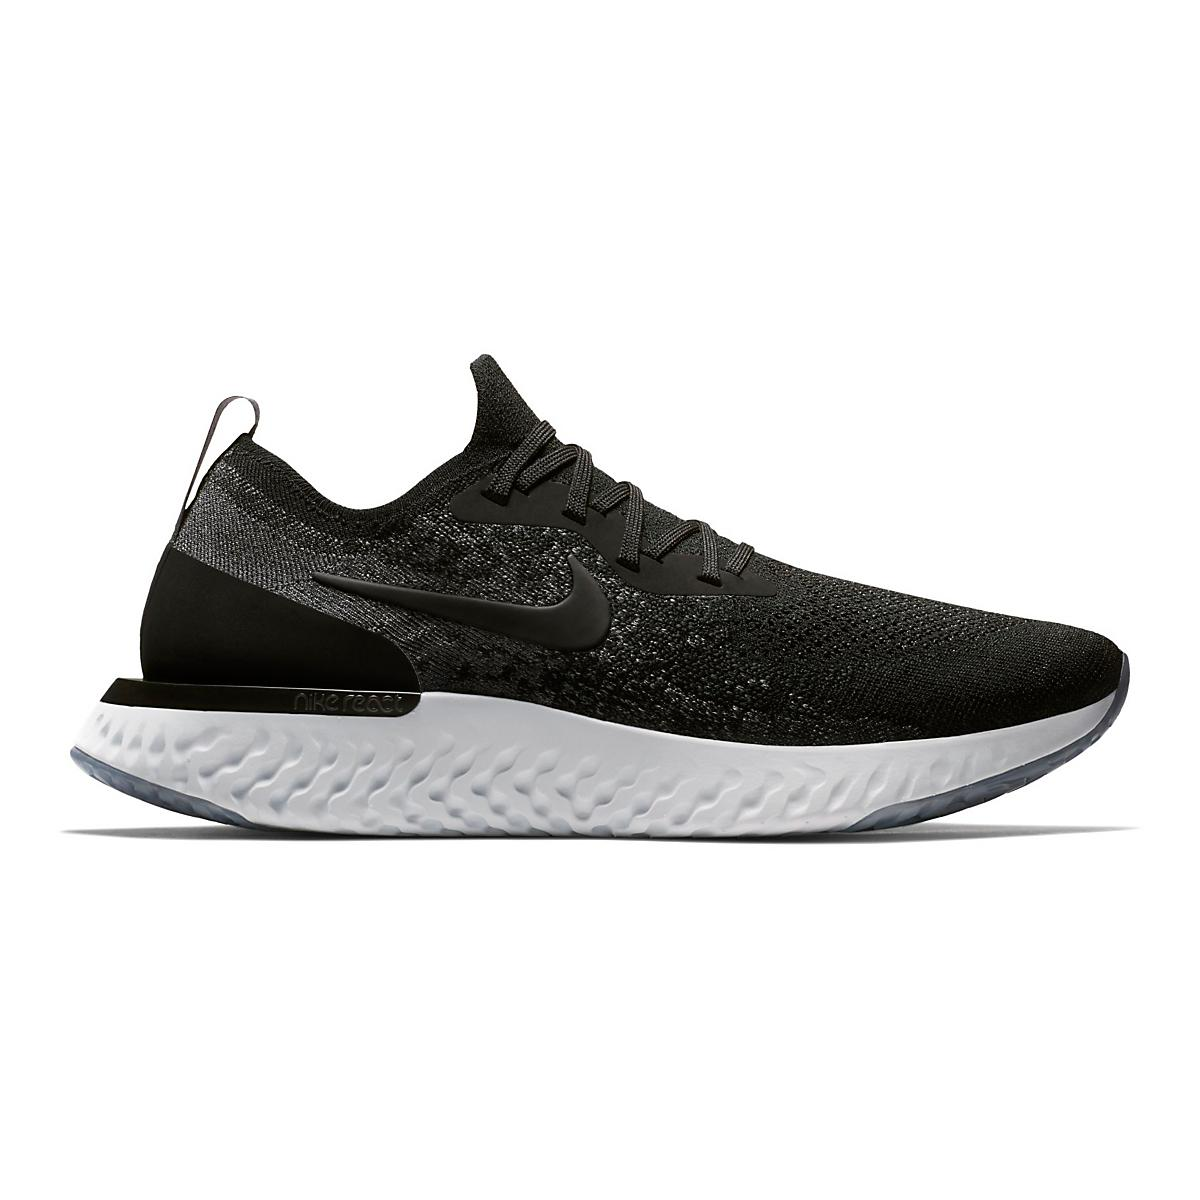 9c612c3d2f083 Nike Epic React Flyknit Men s Running Shoes from Road Runner Sports